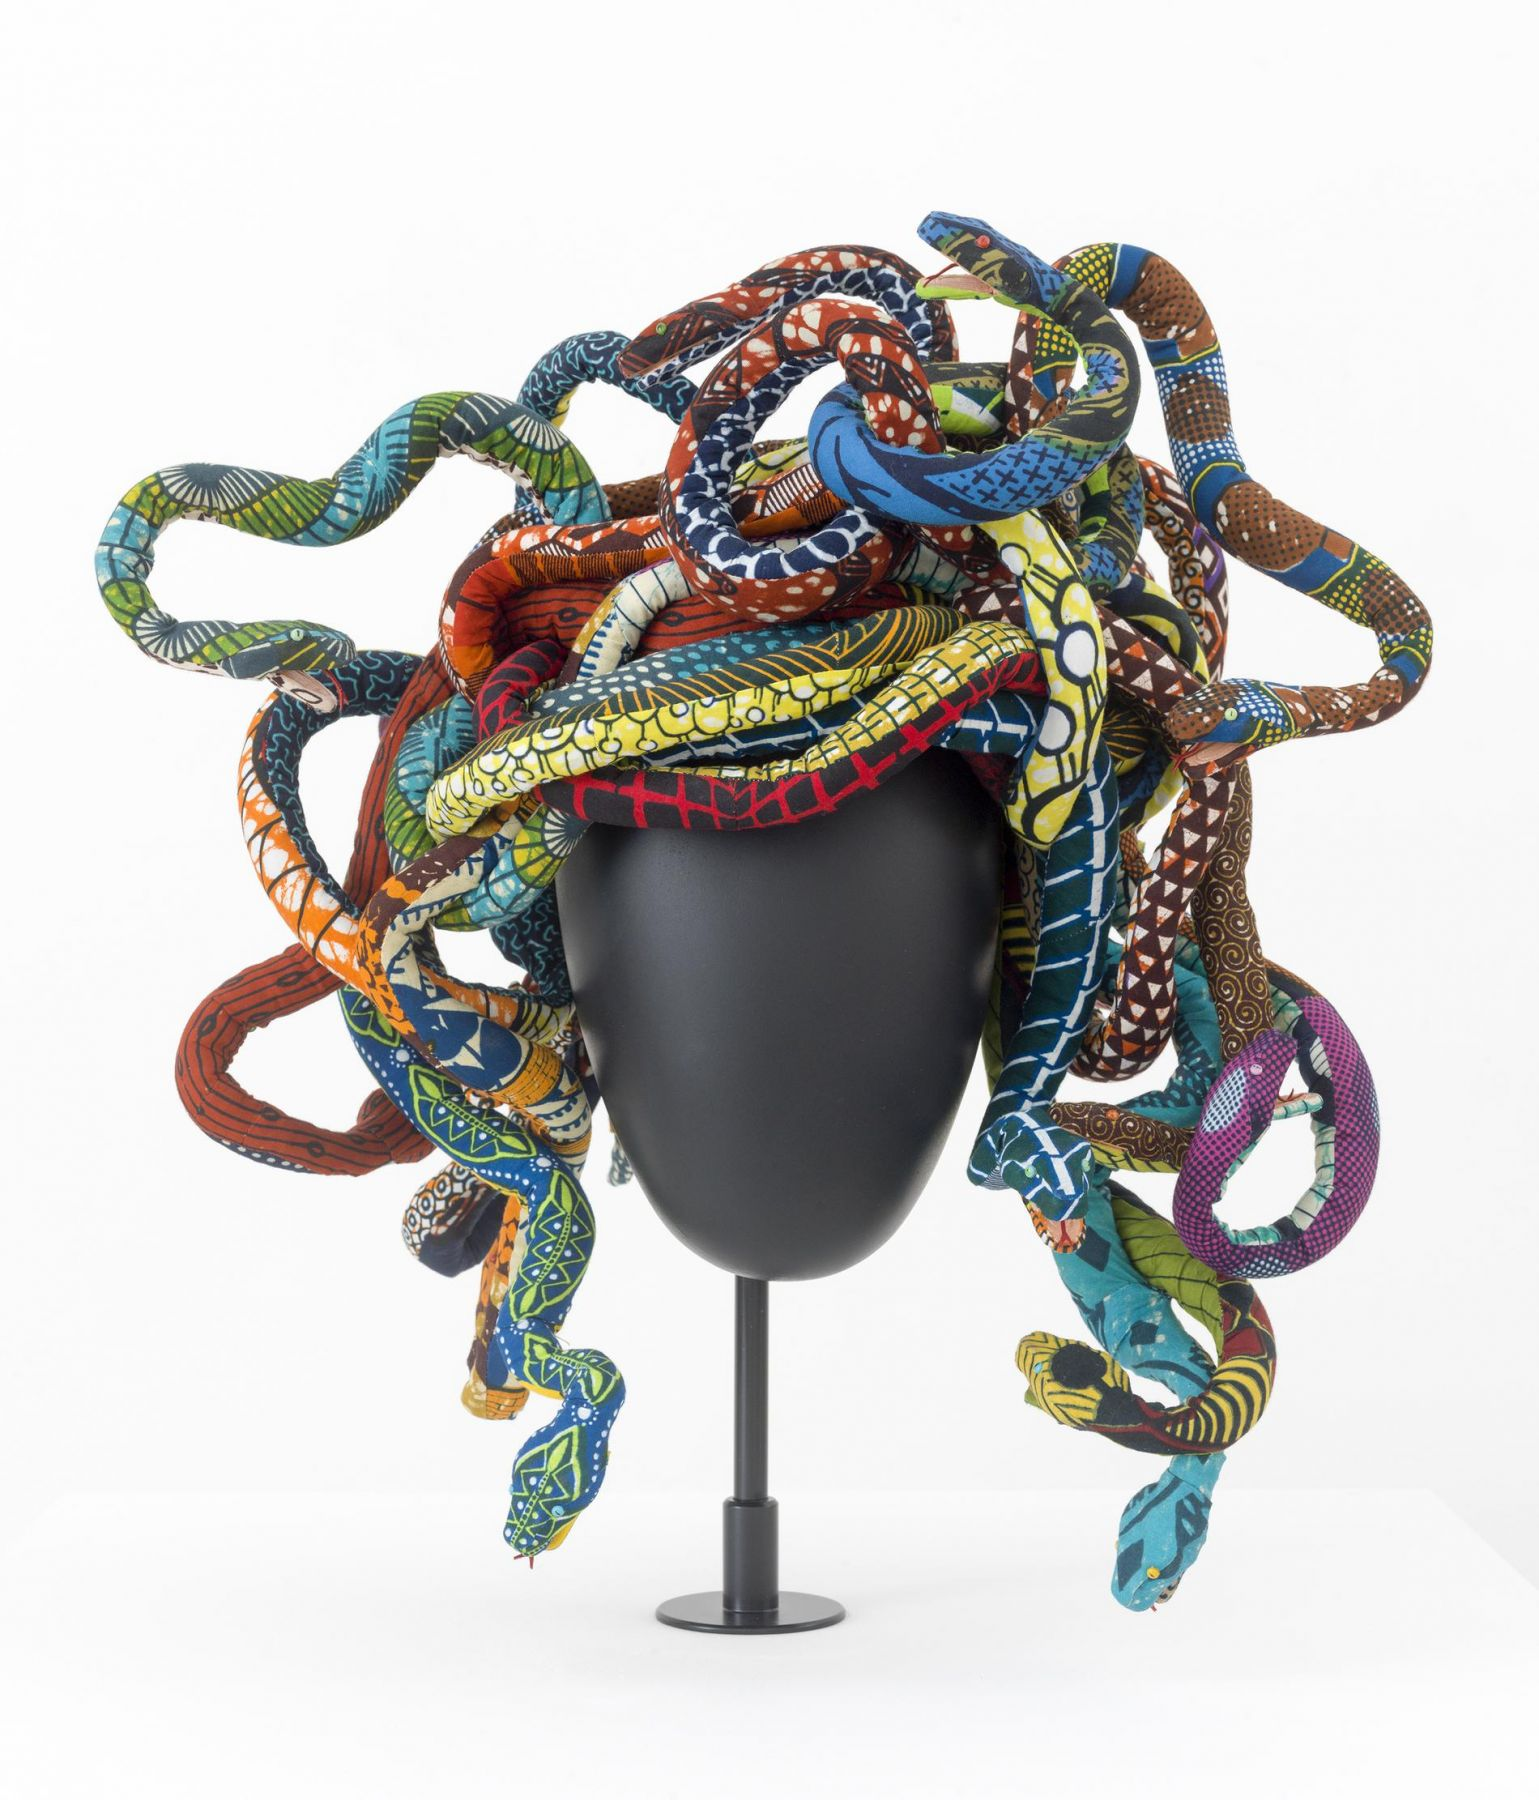 , YINKA SHONIBARE, MBE Medusa Head, 2015 Fibreglass head form, Dutch wax printed cotton textile, metal armature, and steel head stand 13 3/4 x 19 5/8 x 19 5/8 in. (35 x 50 x 50 cm)